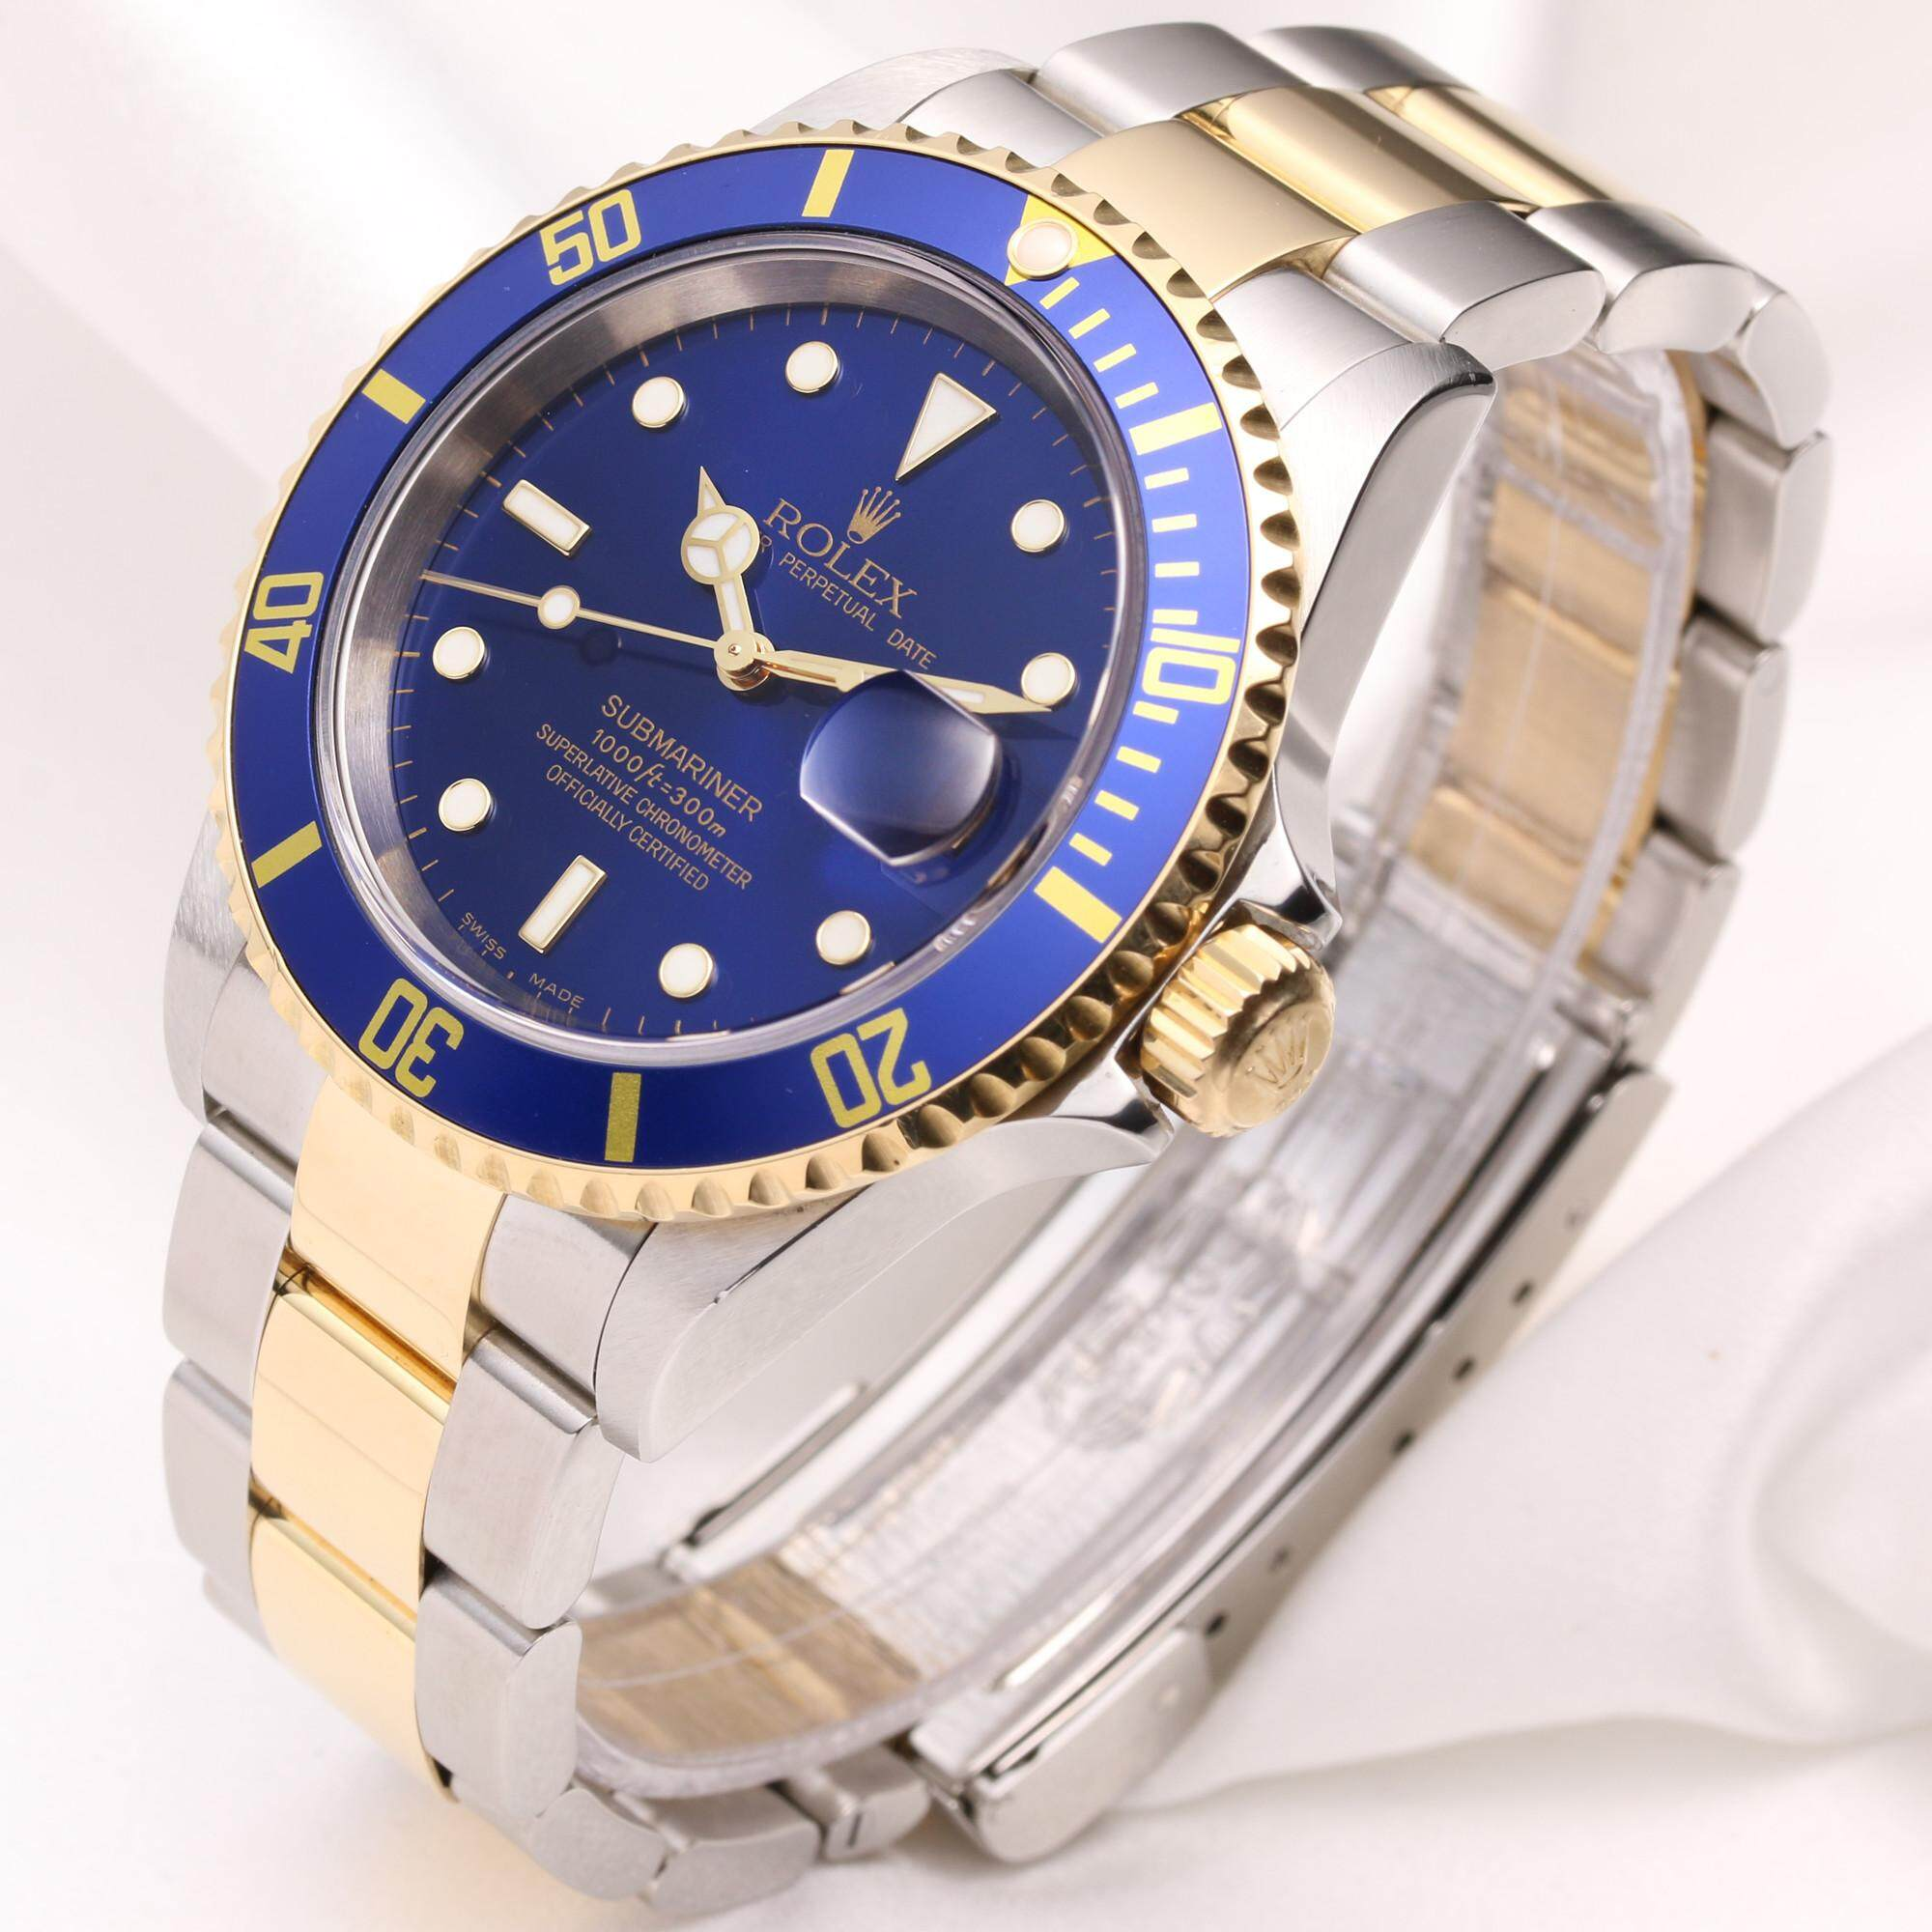 Rolex submarine ( Cheapest Price Guaranteed)